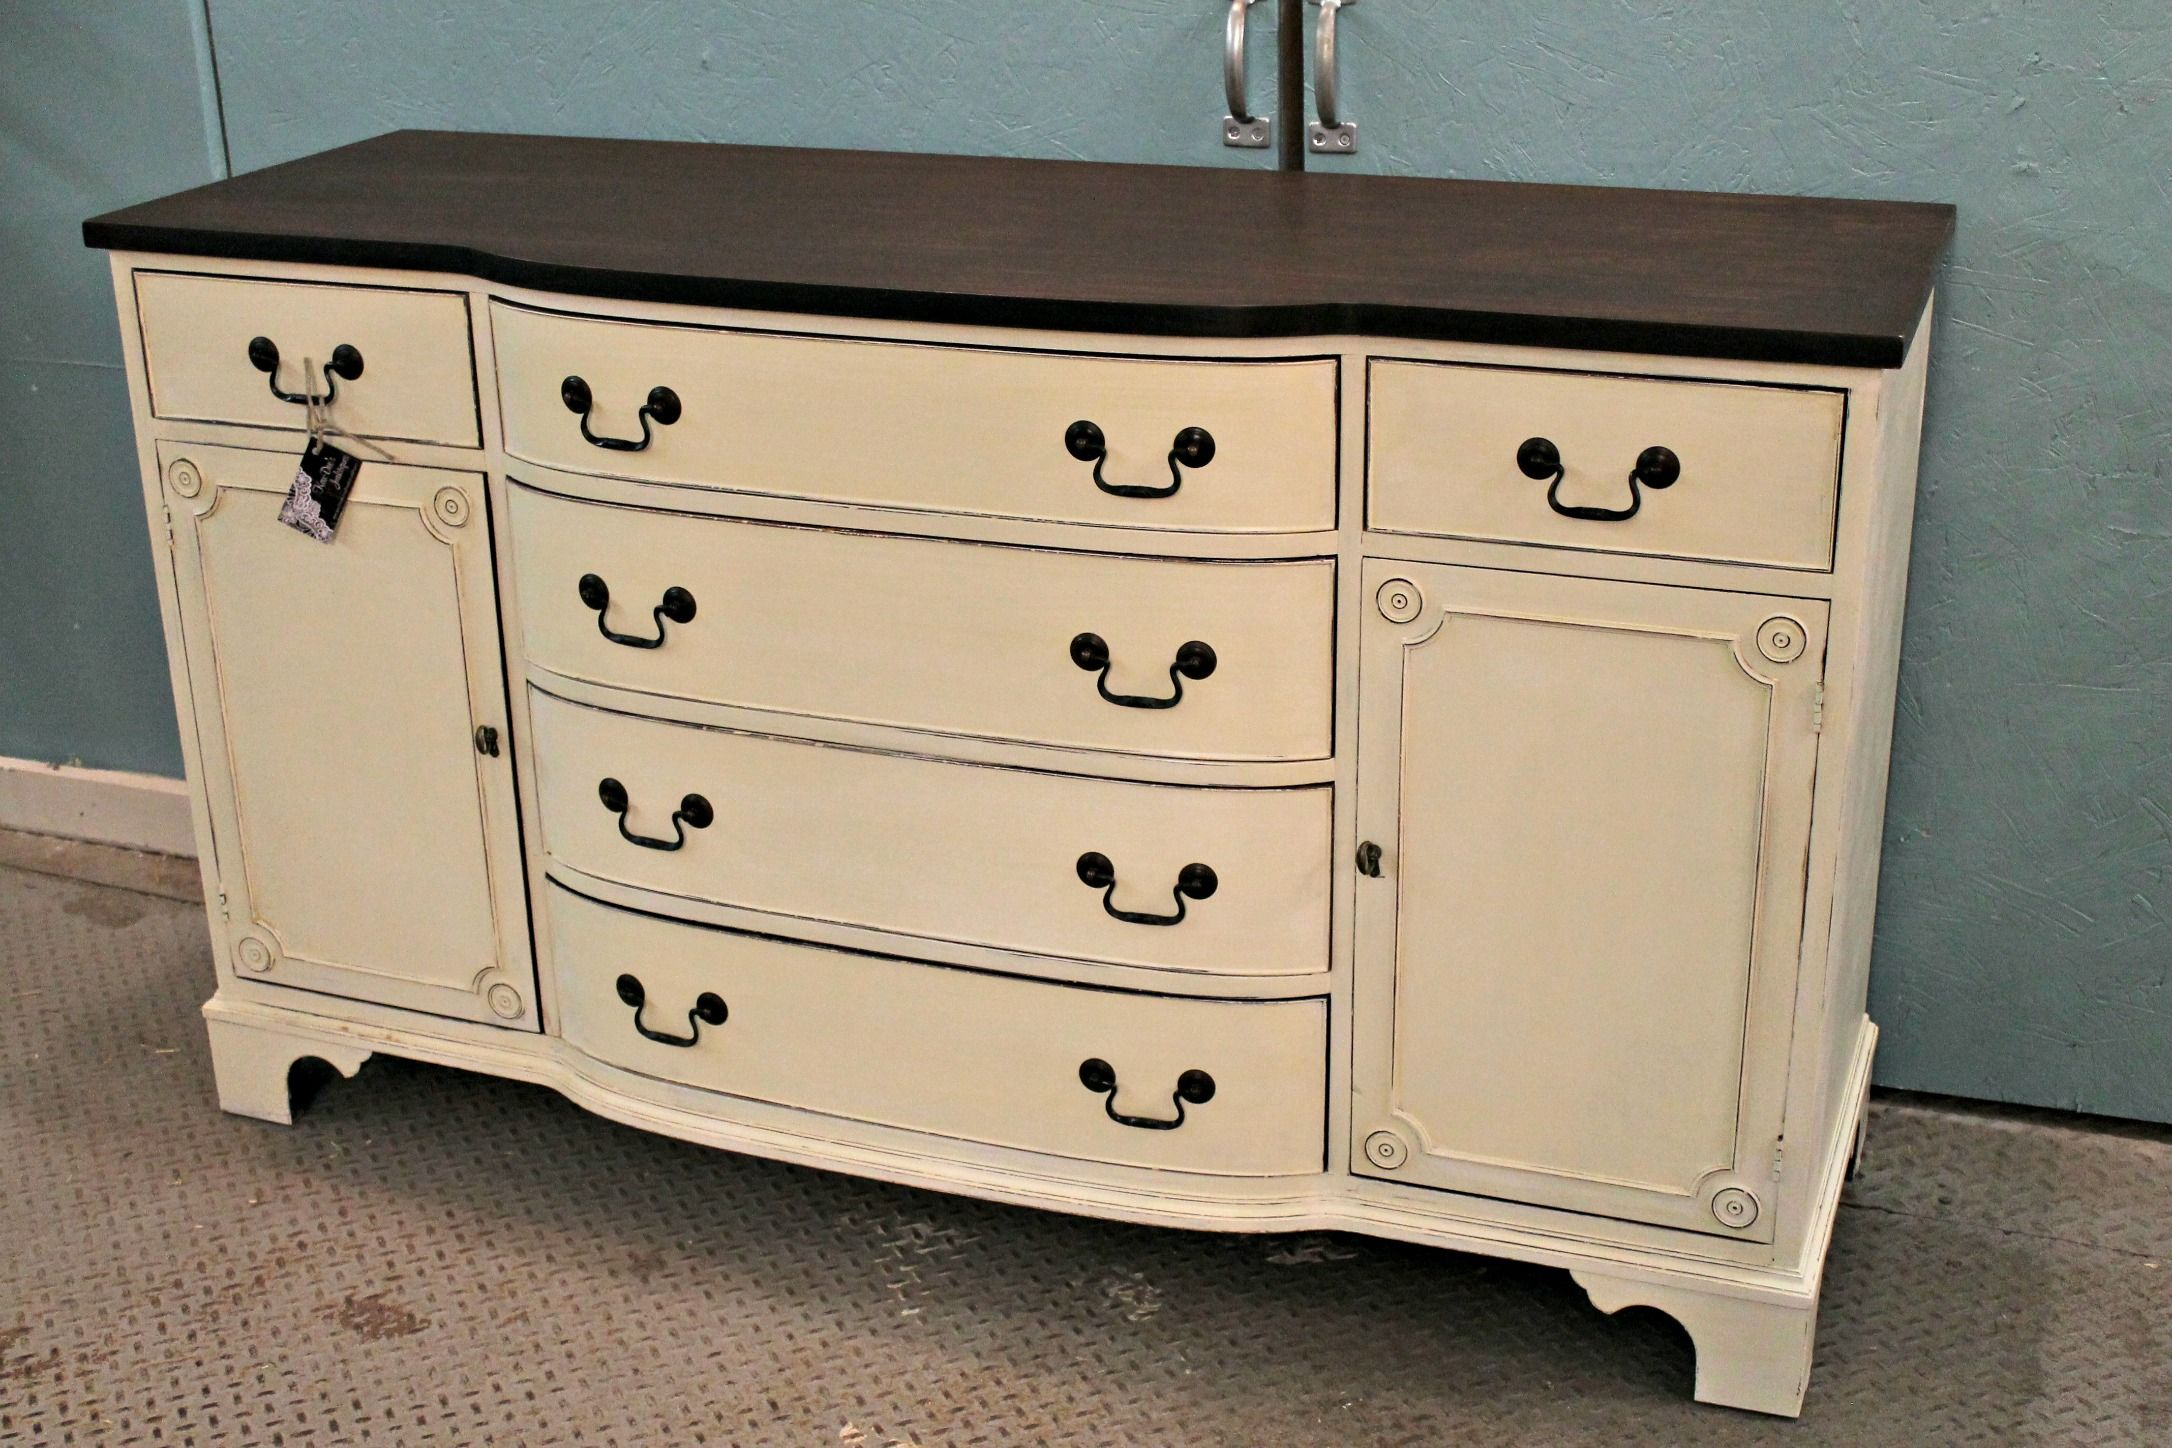 Duncan Phyfe Buffet Painted Furniture Duncan Phyfe Painted